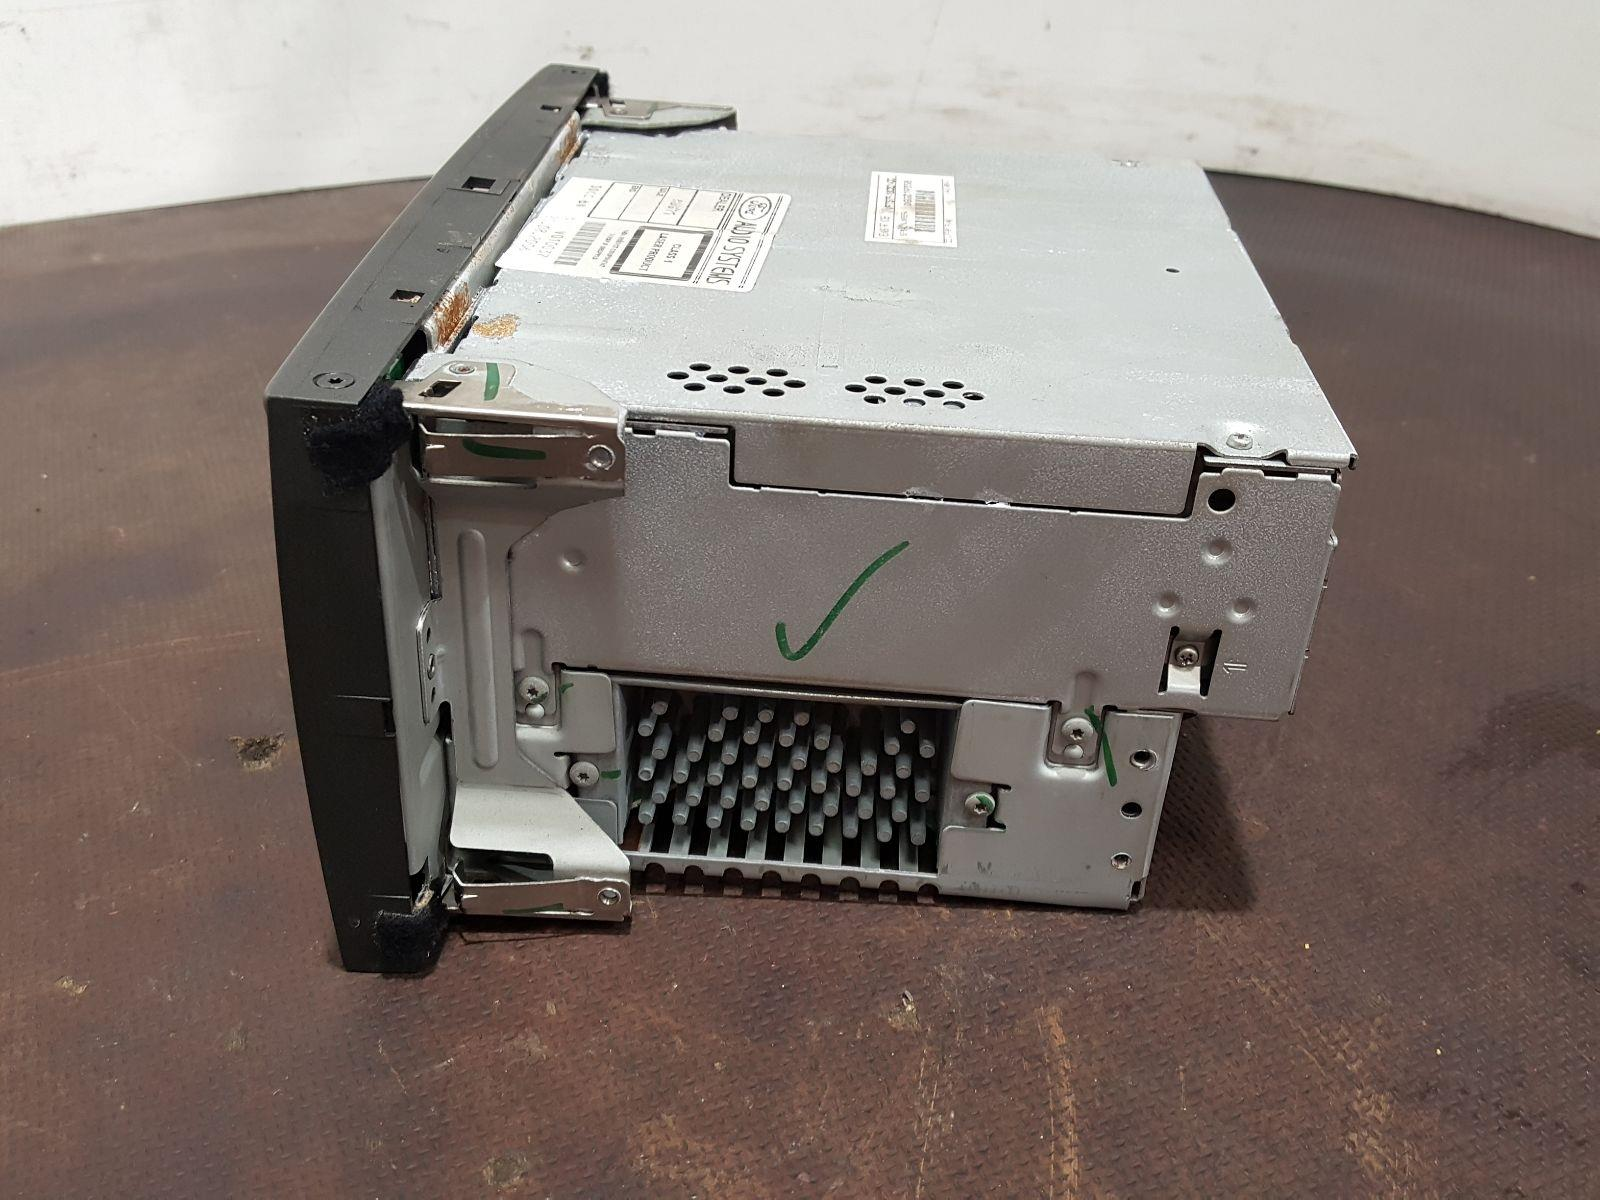 Ford Focus 2005 To 2007 St Radio Cd Player Used And Spare Parts At Combellack Vehicle Recyclers